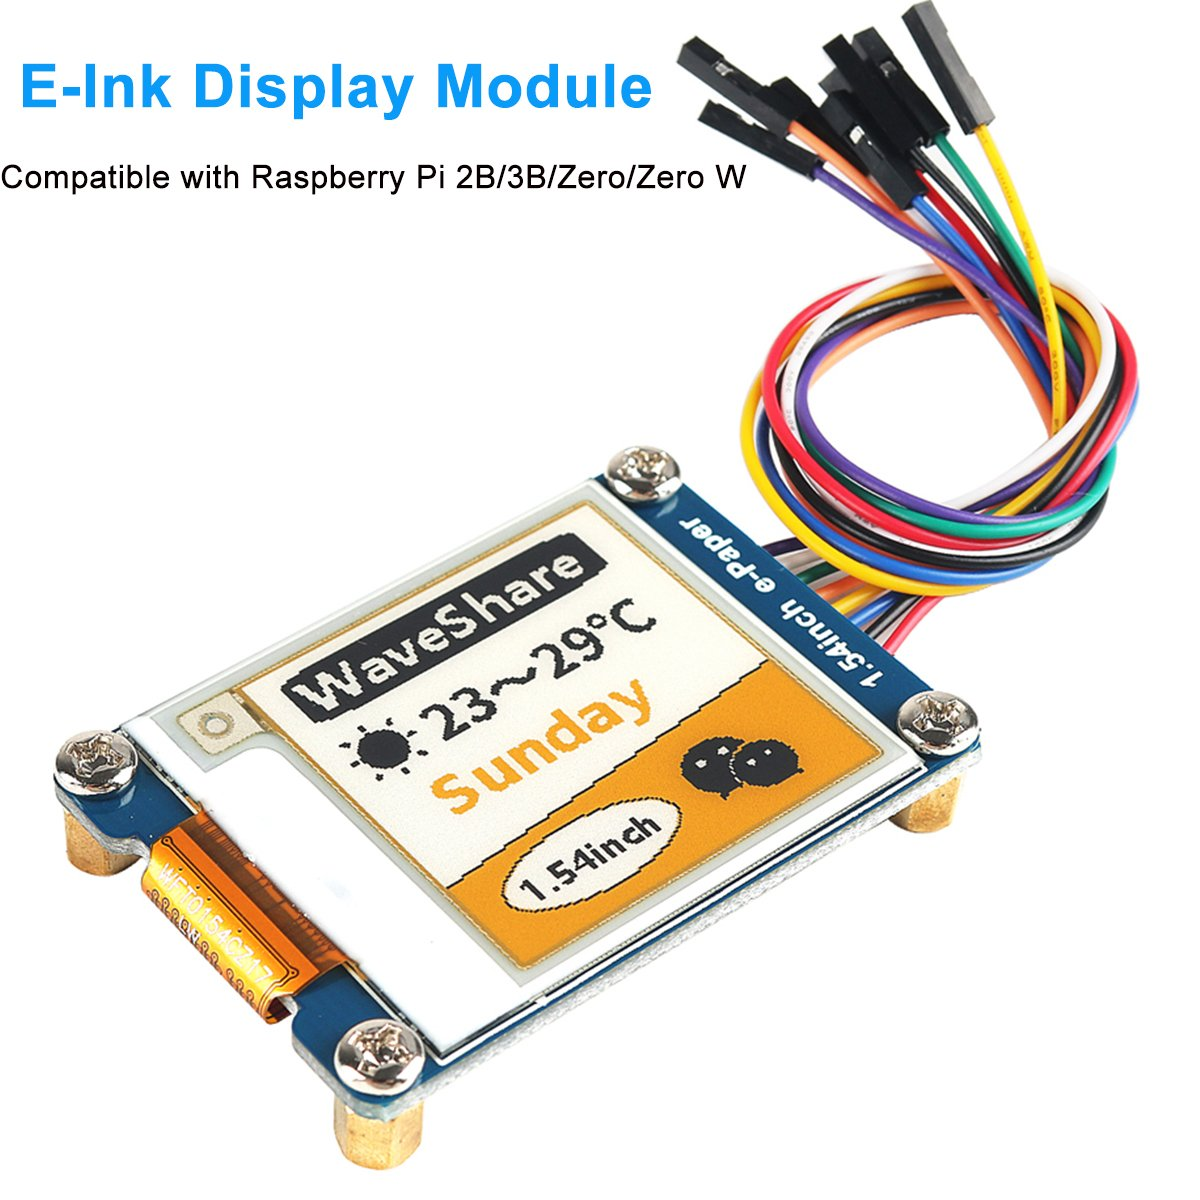 MakerHawk E-Ink Display Module, 1.54 inch E-Paper Display Module Screen Panel SPI Interface for Arduino Raspberry Pi 2B/3B/Zero/Zero W, Three Color Low Power Consumption, Wide Viewing Angle by MakerHawk (Image #1)